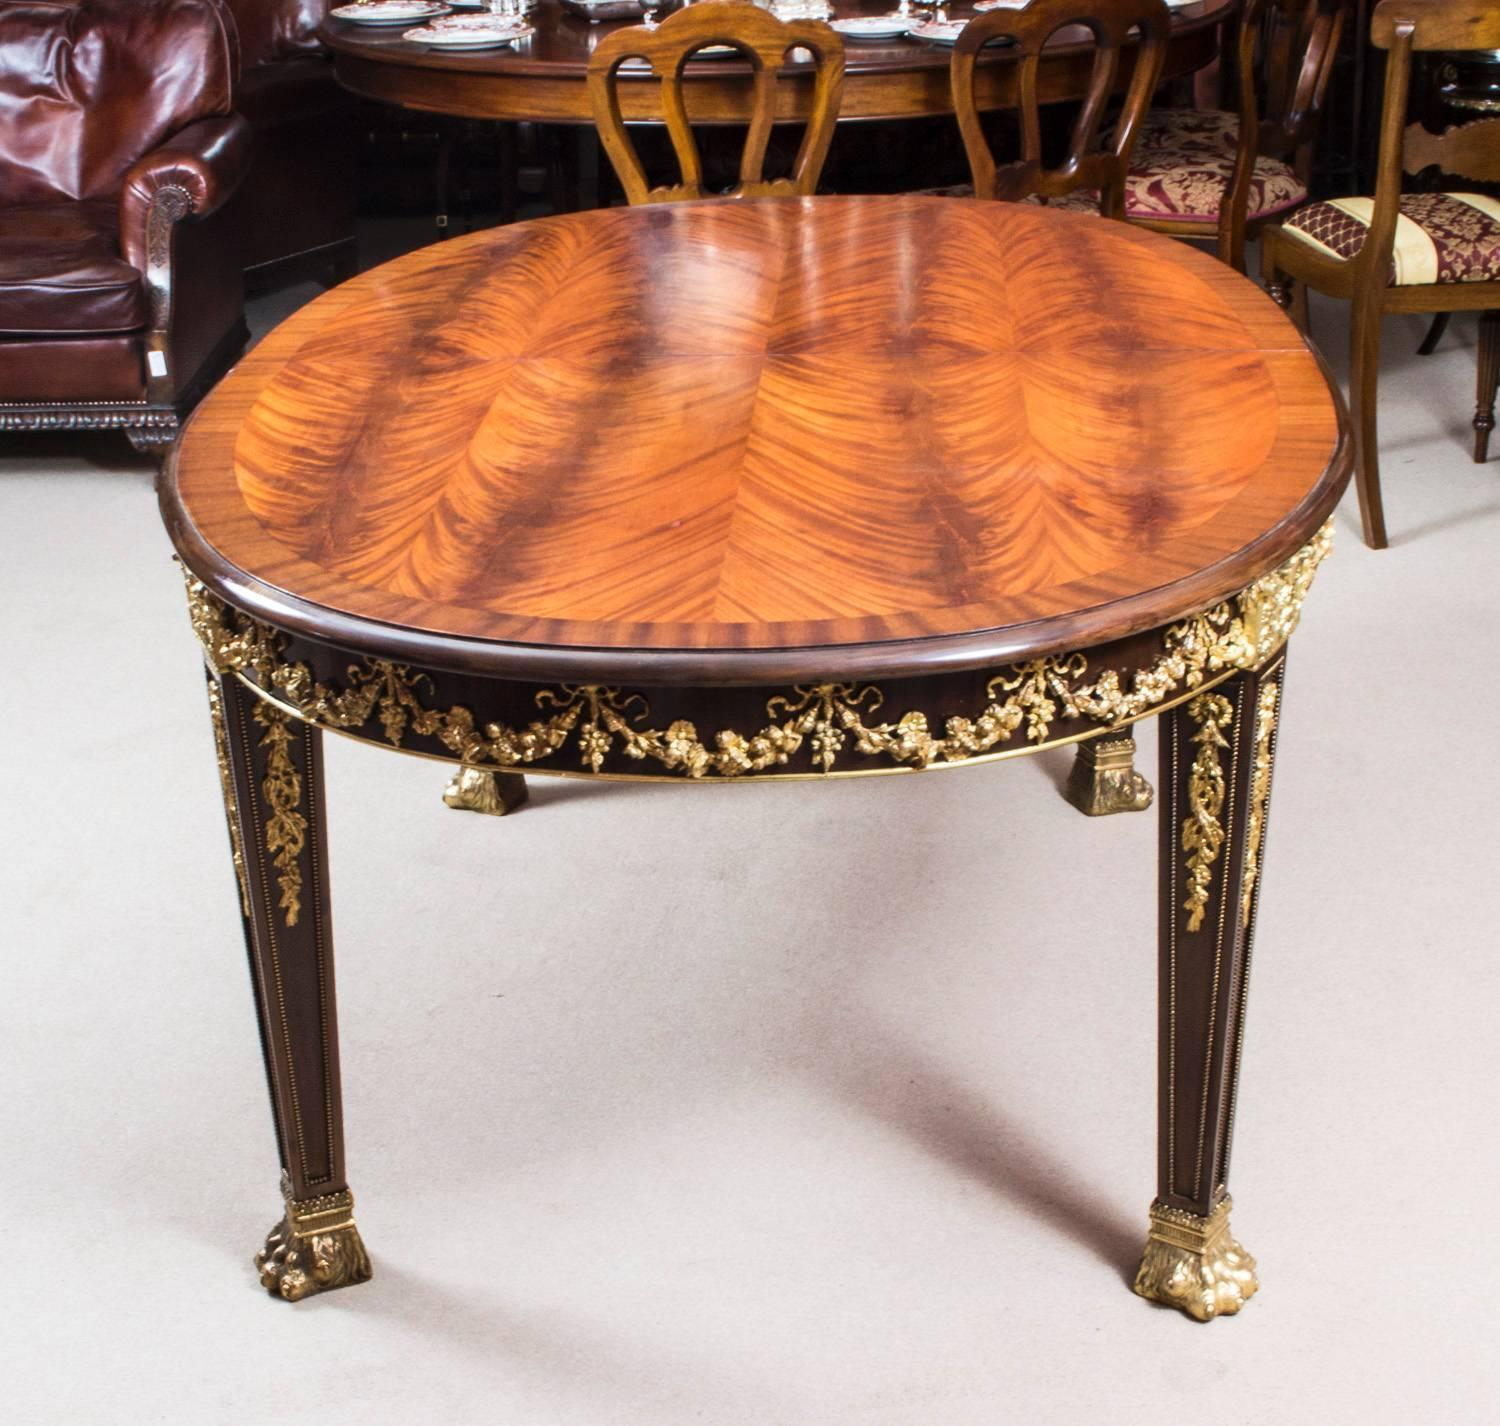 Antique Mahogany Dining Room Furniture: Antique Flame Mahogany Ormolu Dining Table And Ten Chairs